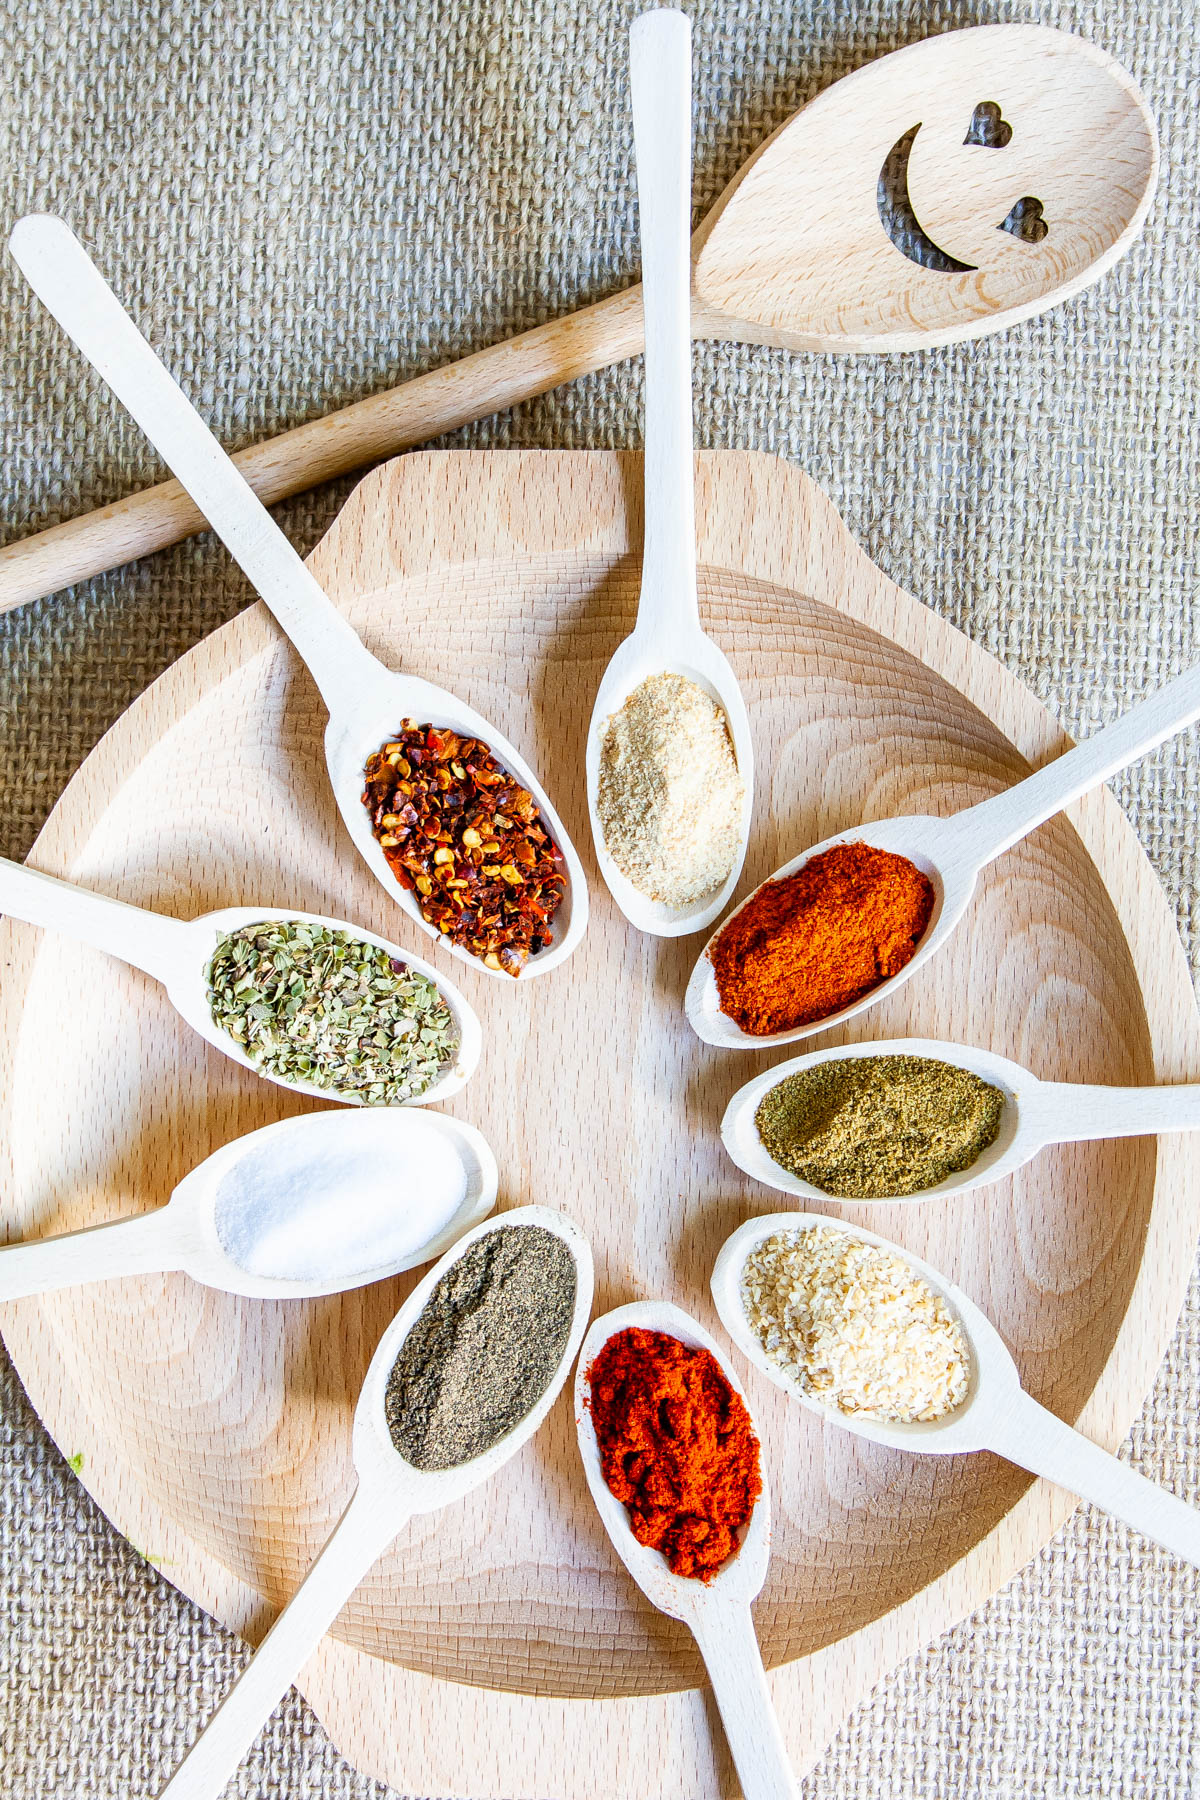 a spoon with each spice needed to make taco seasoning